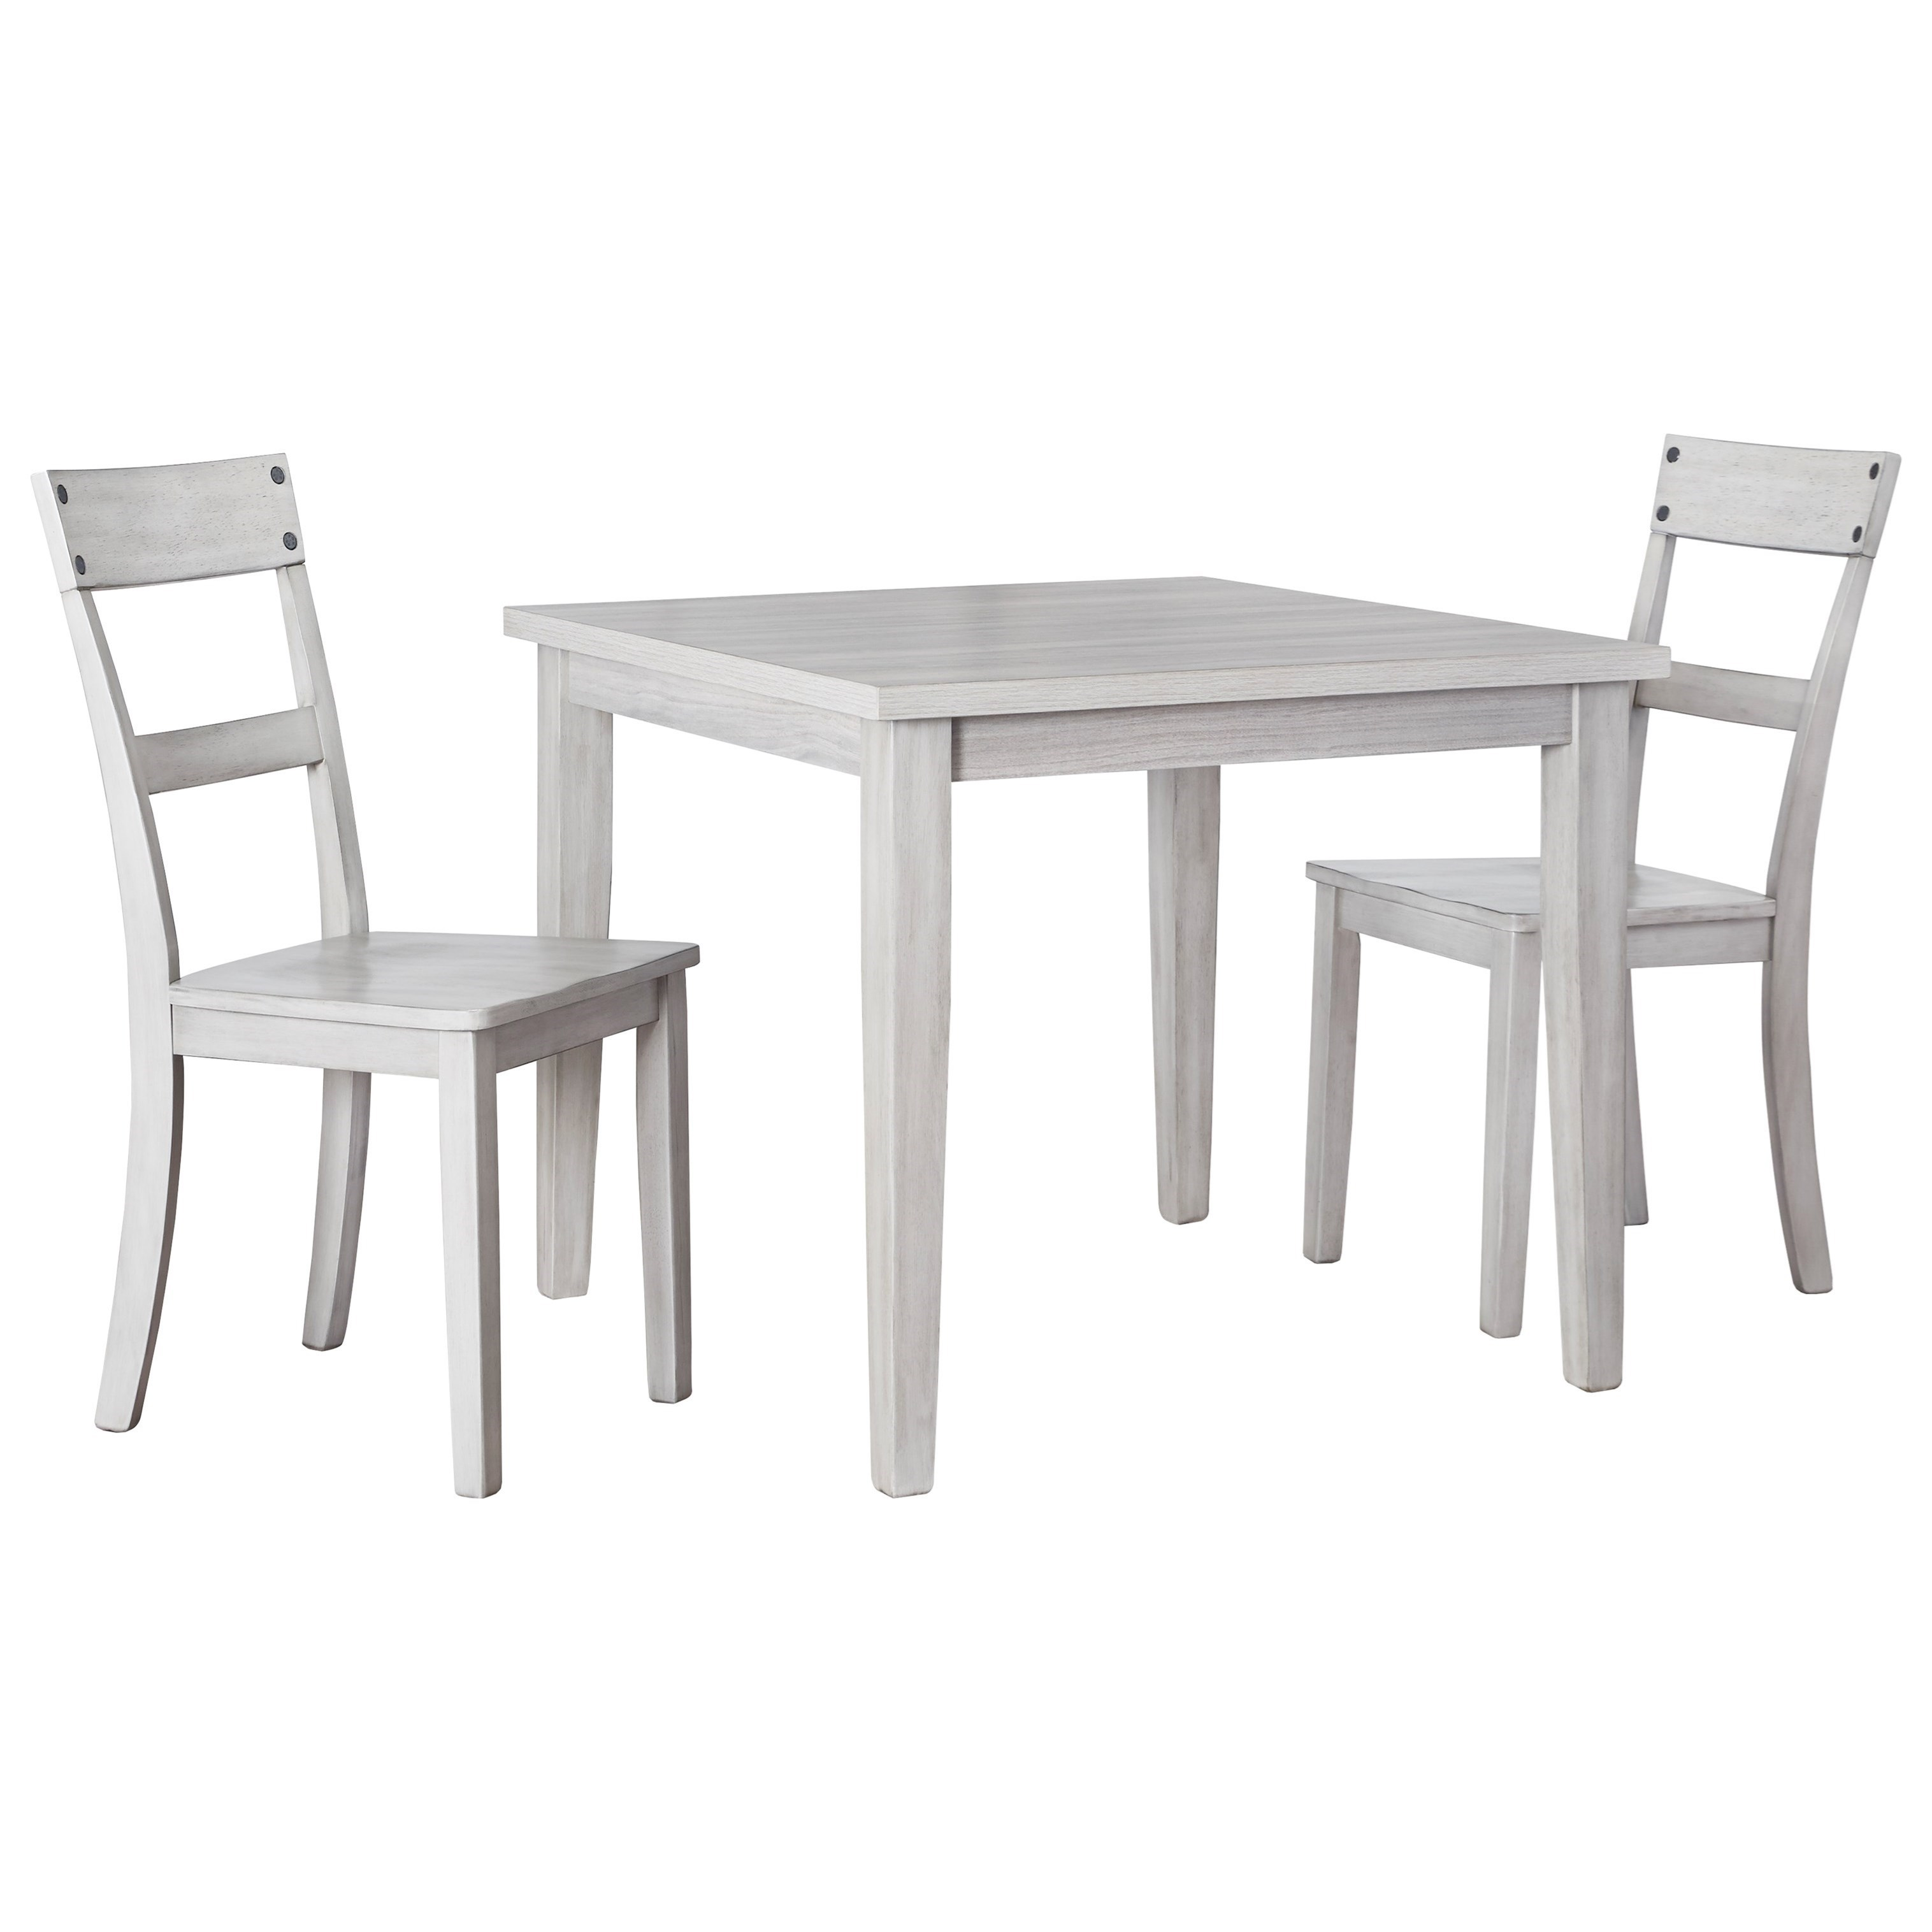 Loratti 3-Piece Square Dining Table Set by Signature Design by Ashley at Prime Brothers Furniture